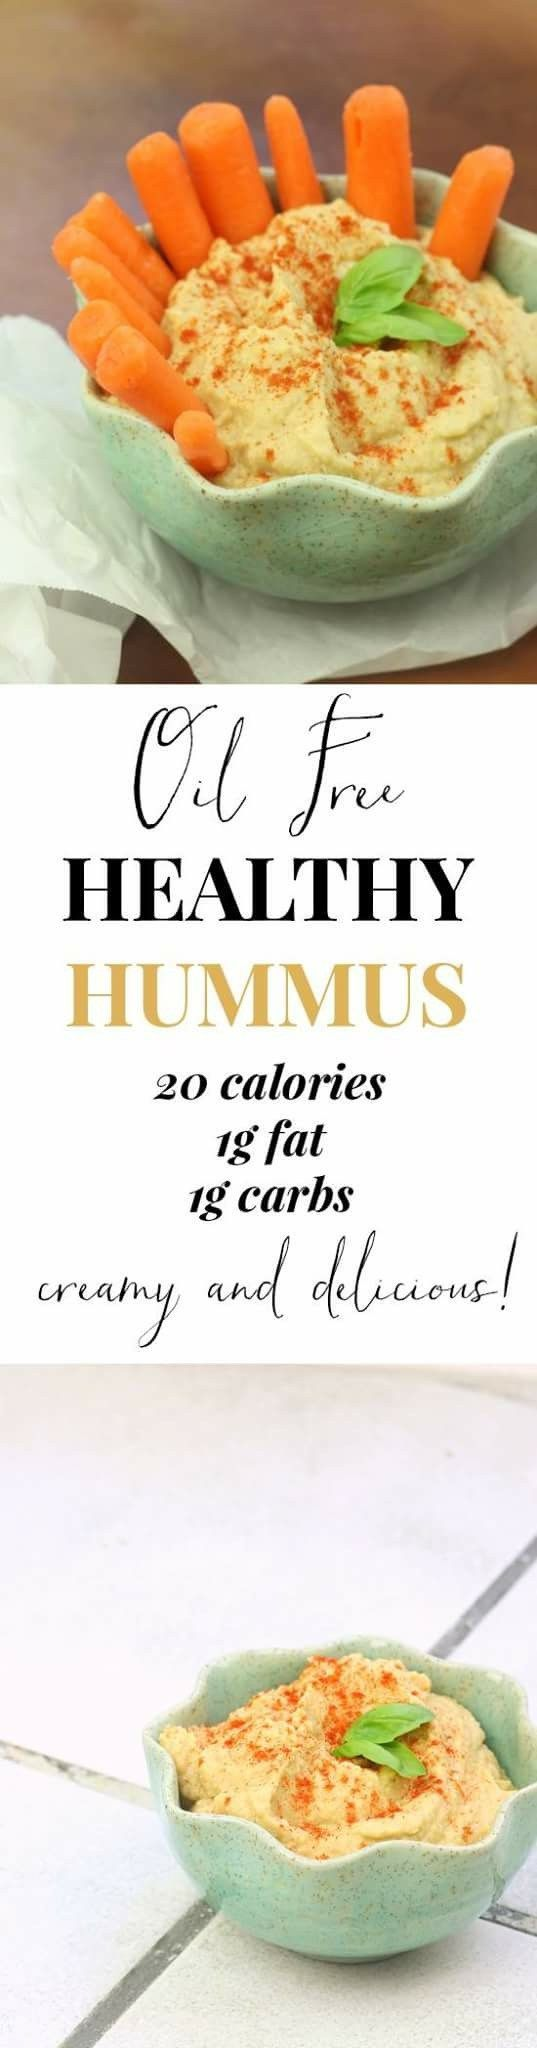 The perfect homemade hummus. Oil free and completely addicting! Good thing its so low in